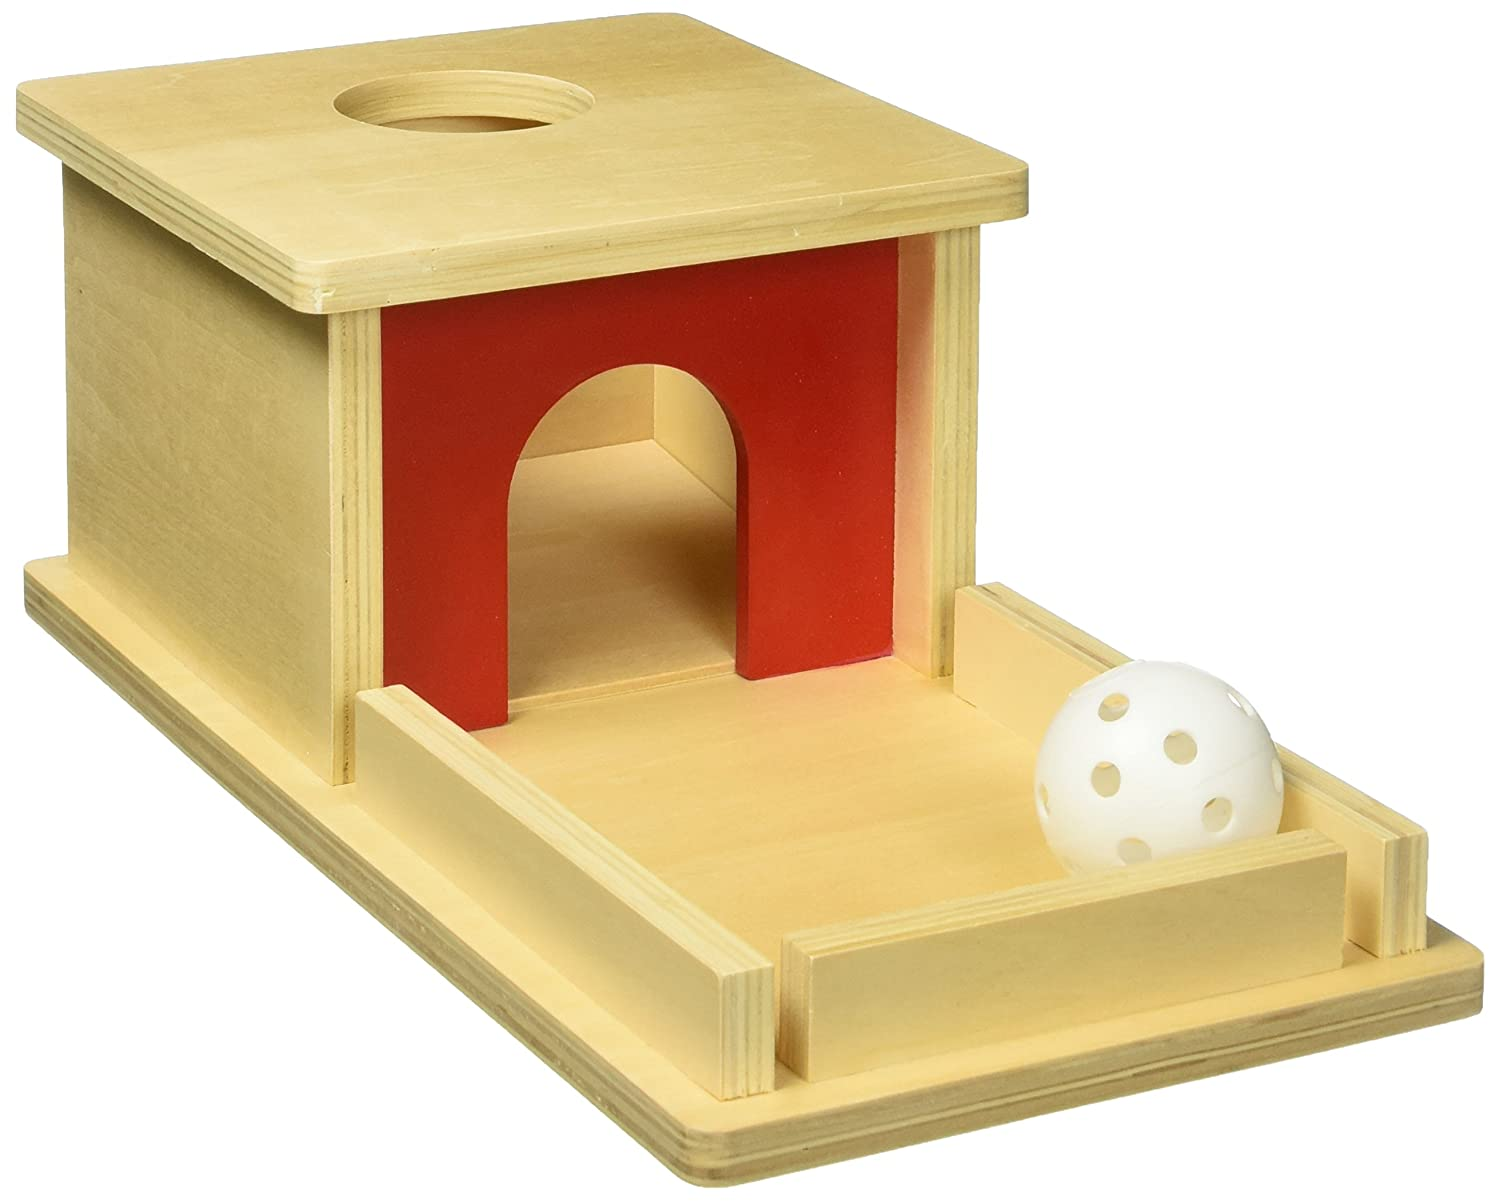 Montessori Object Permanence Box with Tray and Ball D & D Distributor